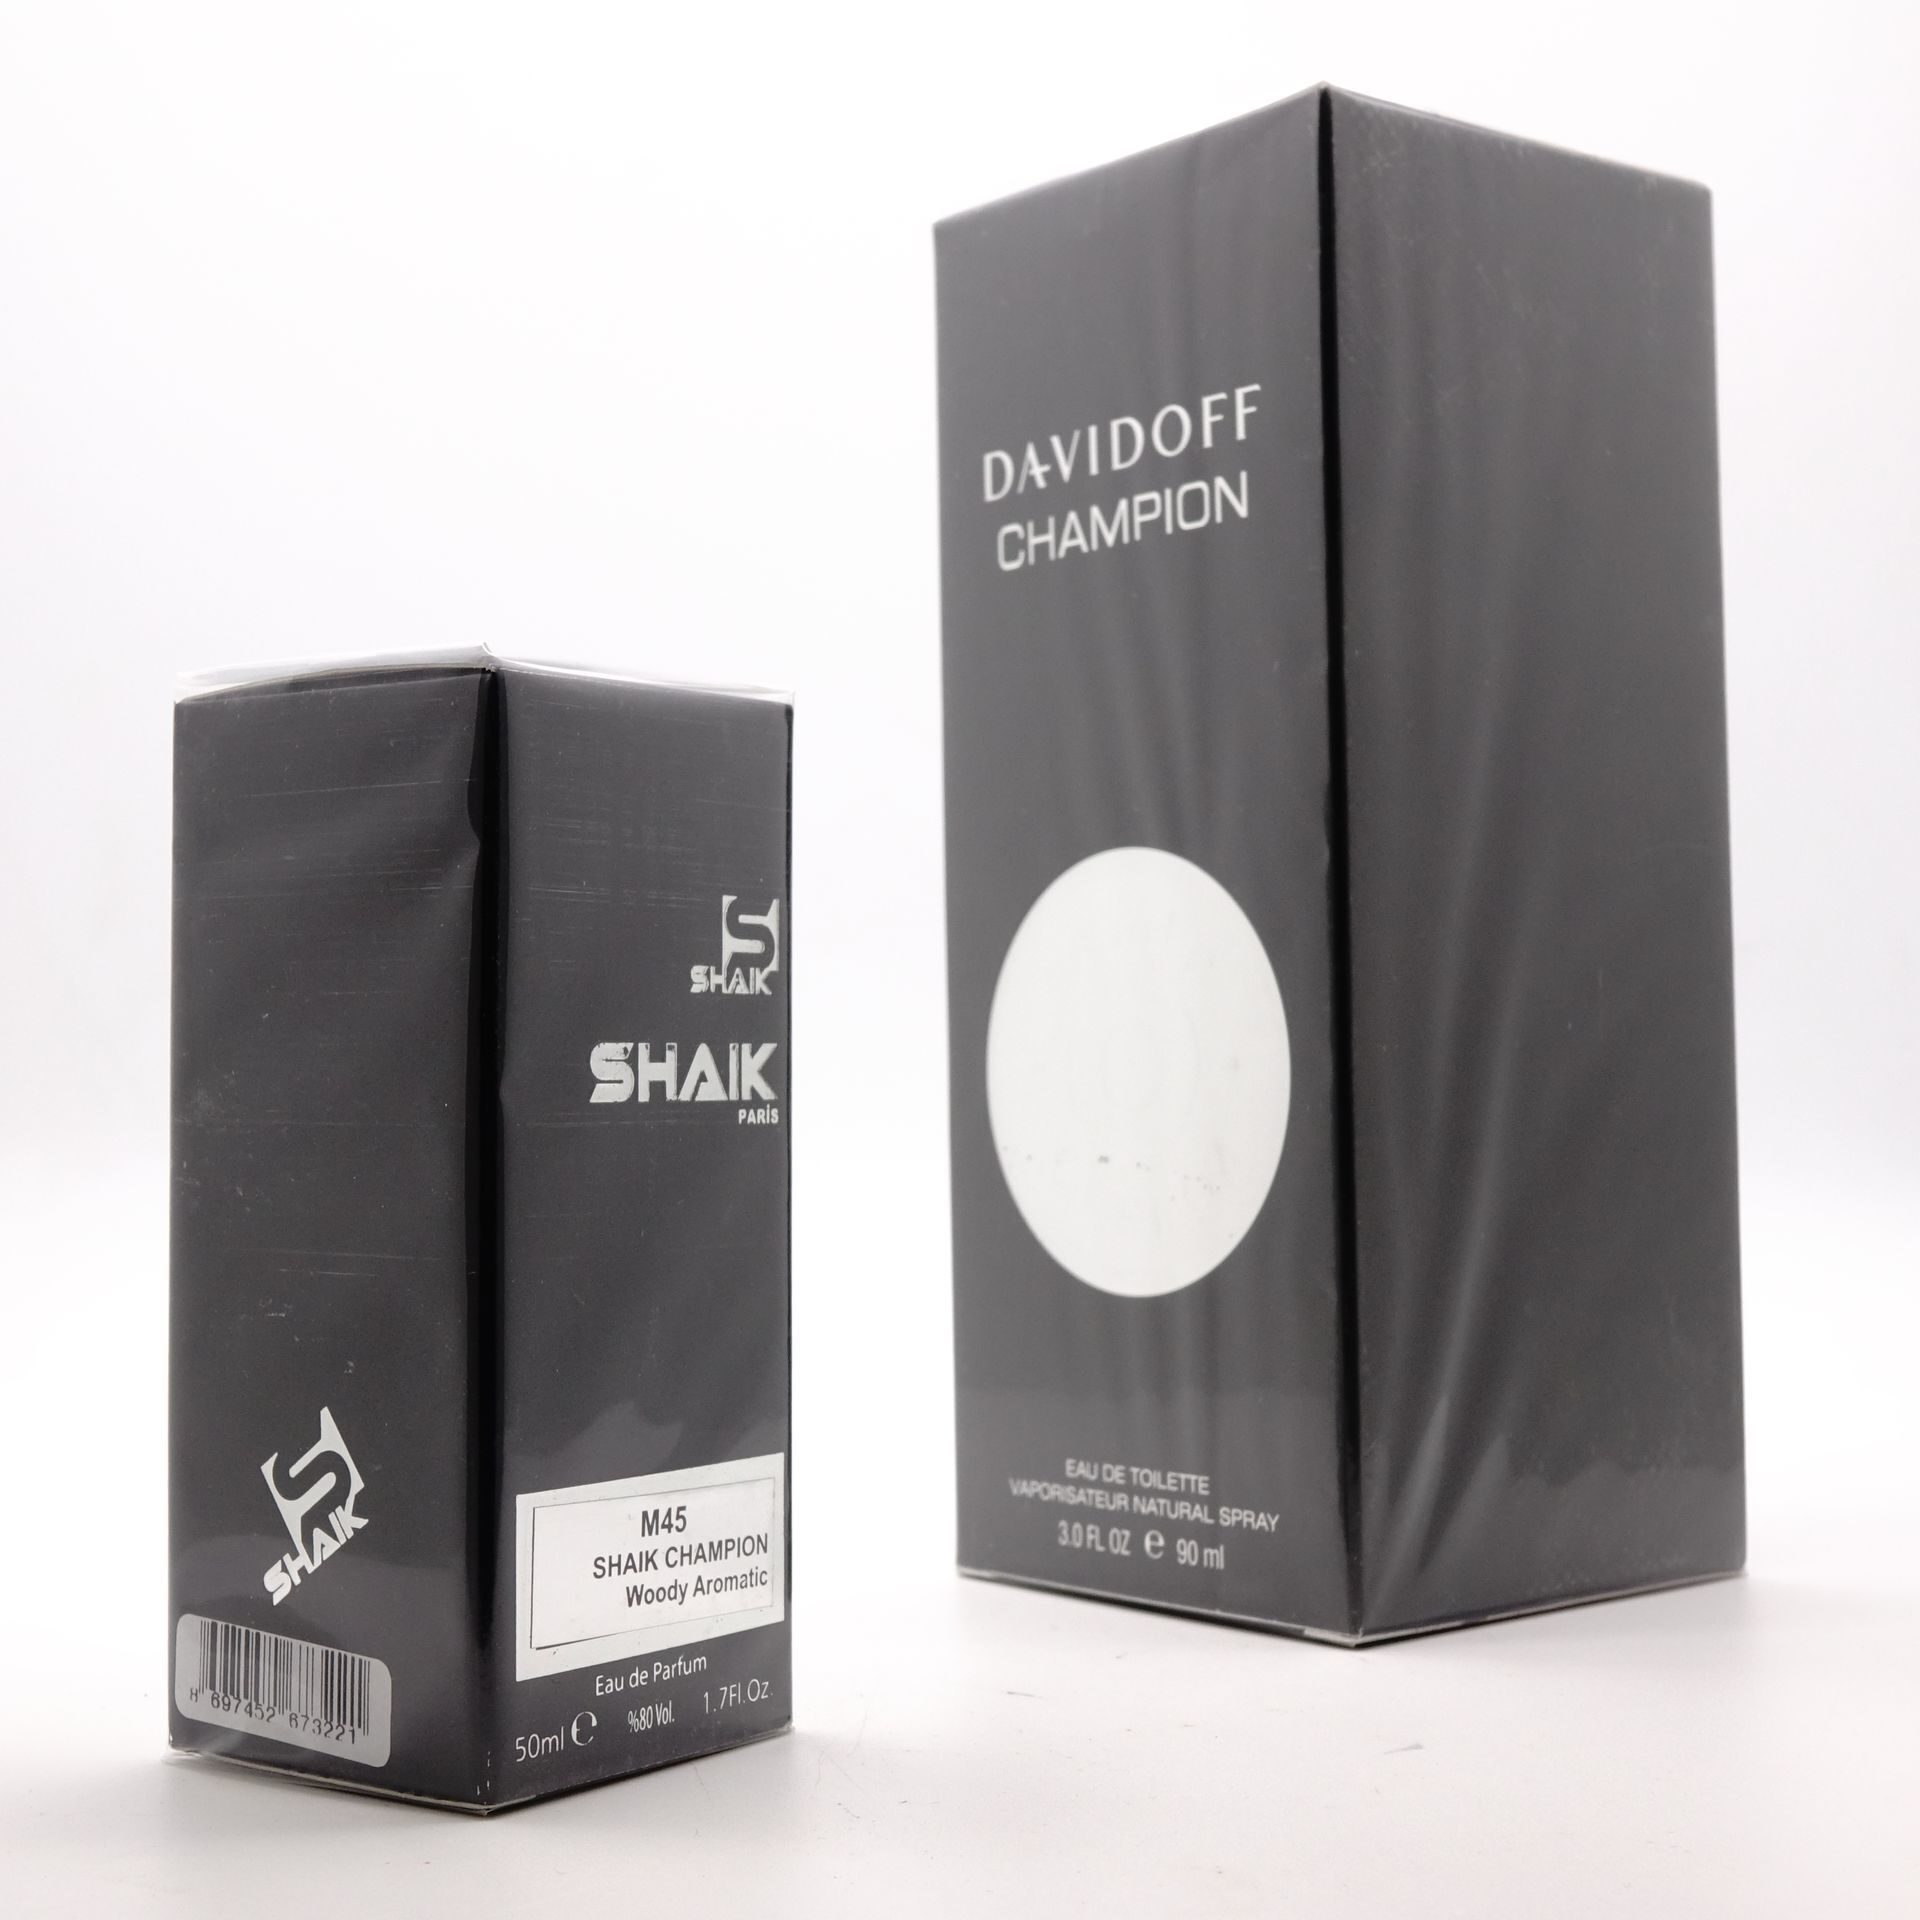 SHAIK M 45 (DAVIDOFF CHAMPION FOR MEN) 50ml